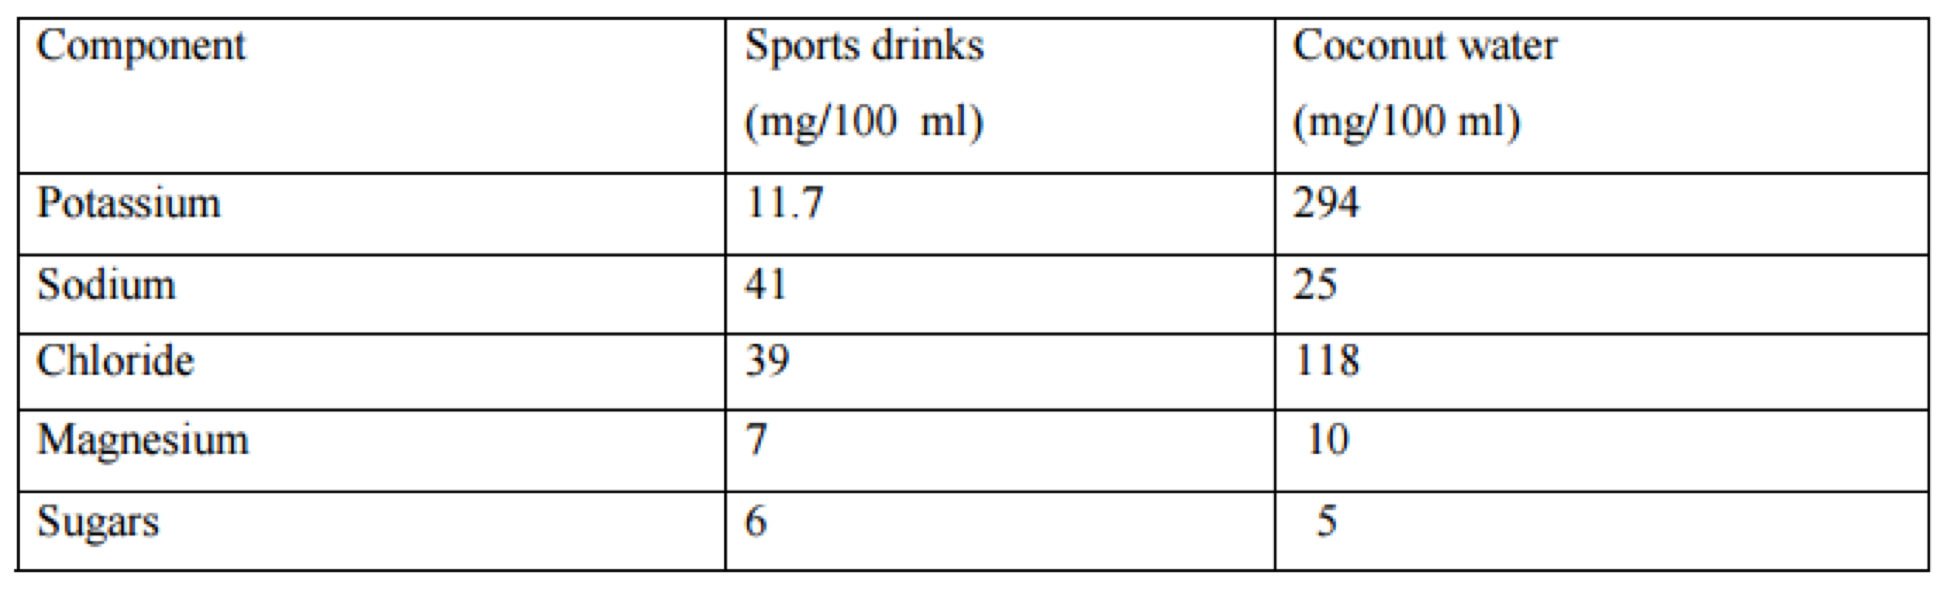 Amino Acids during your workout versus Sports Drinks